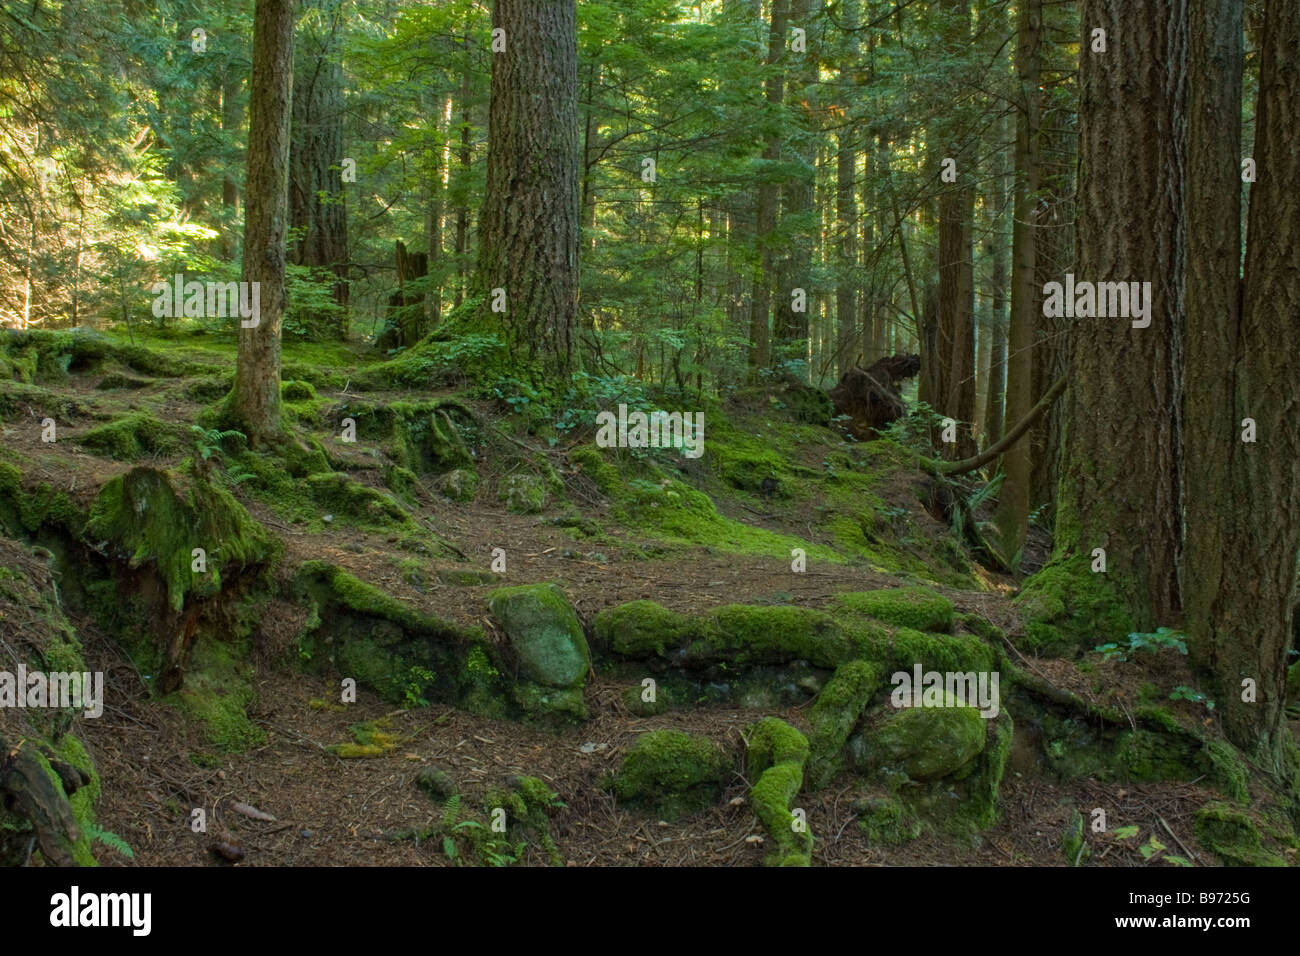 Moss and trees, British Columbia Cananda - Stock Image